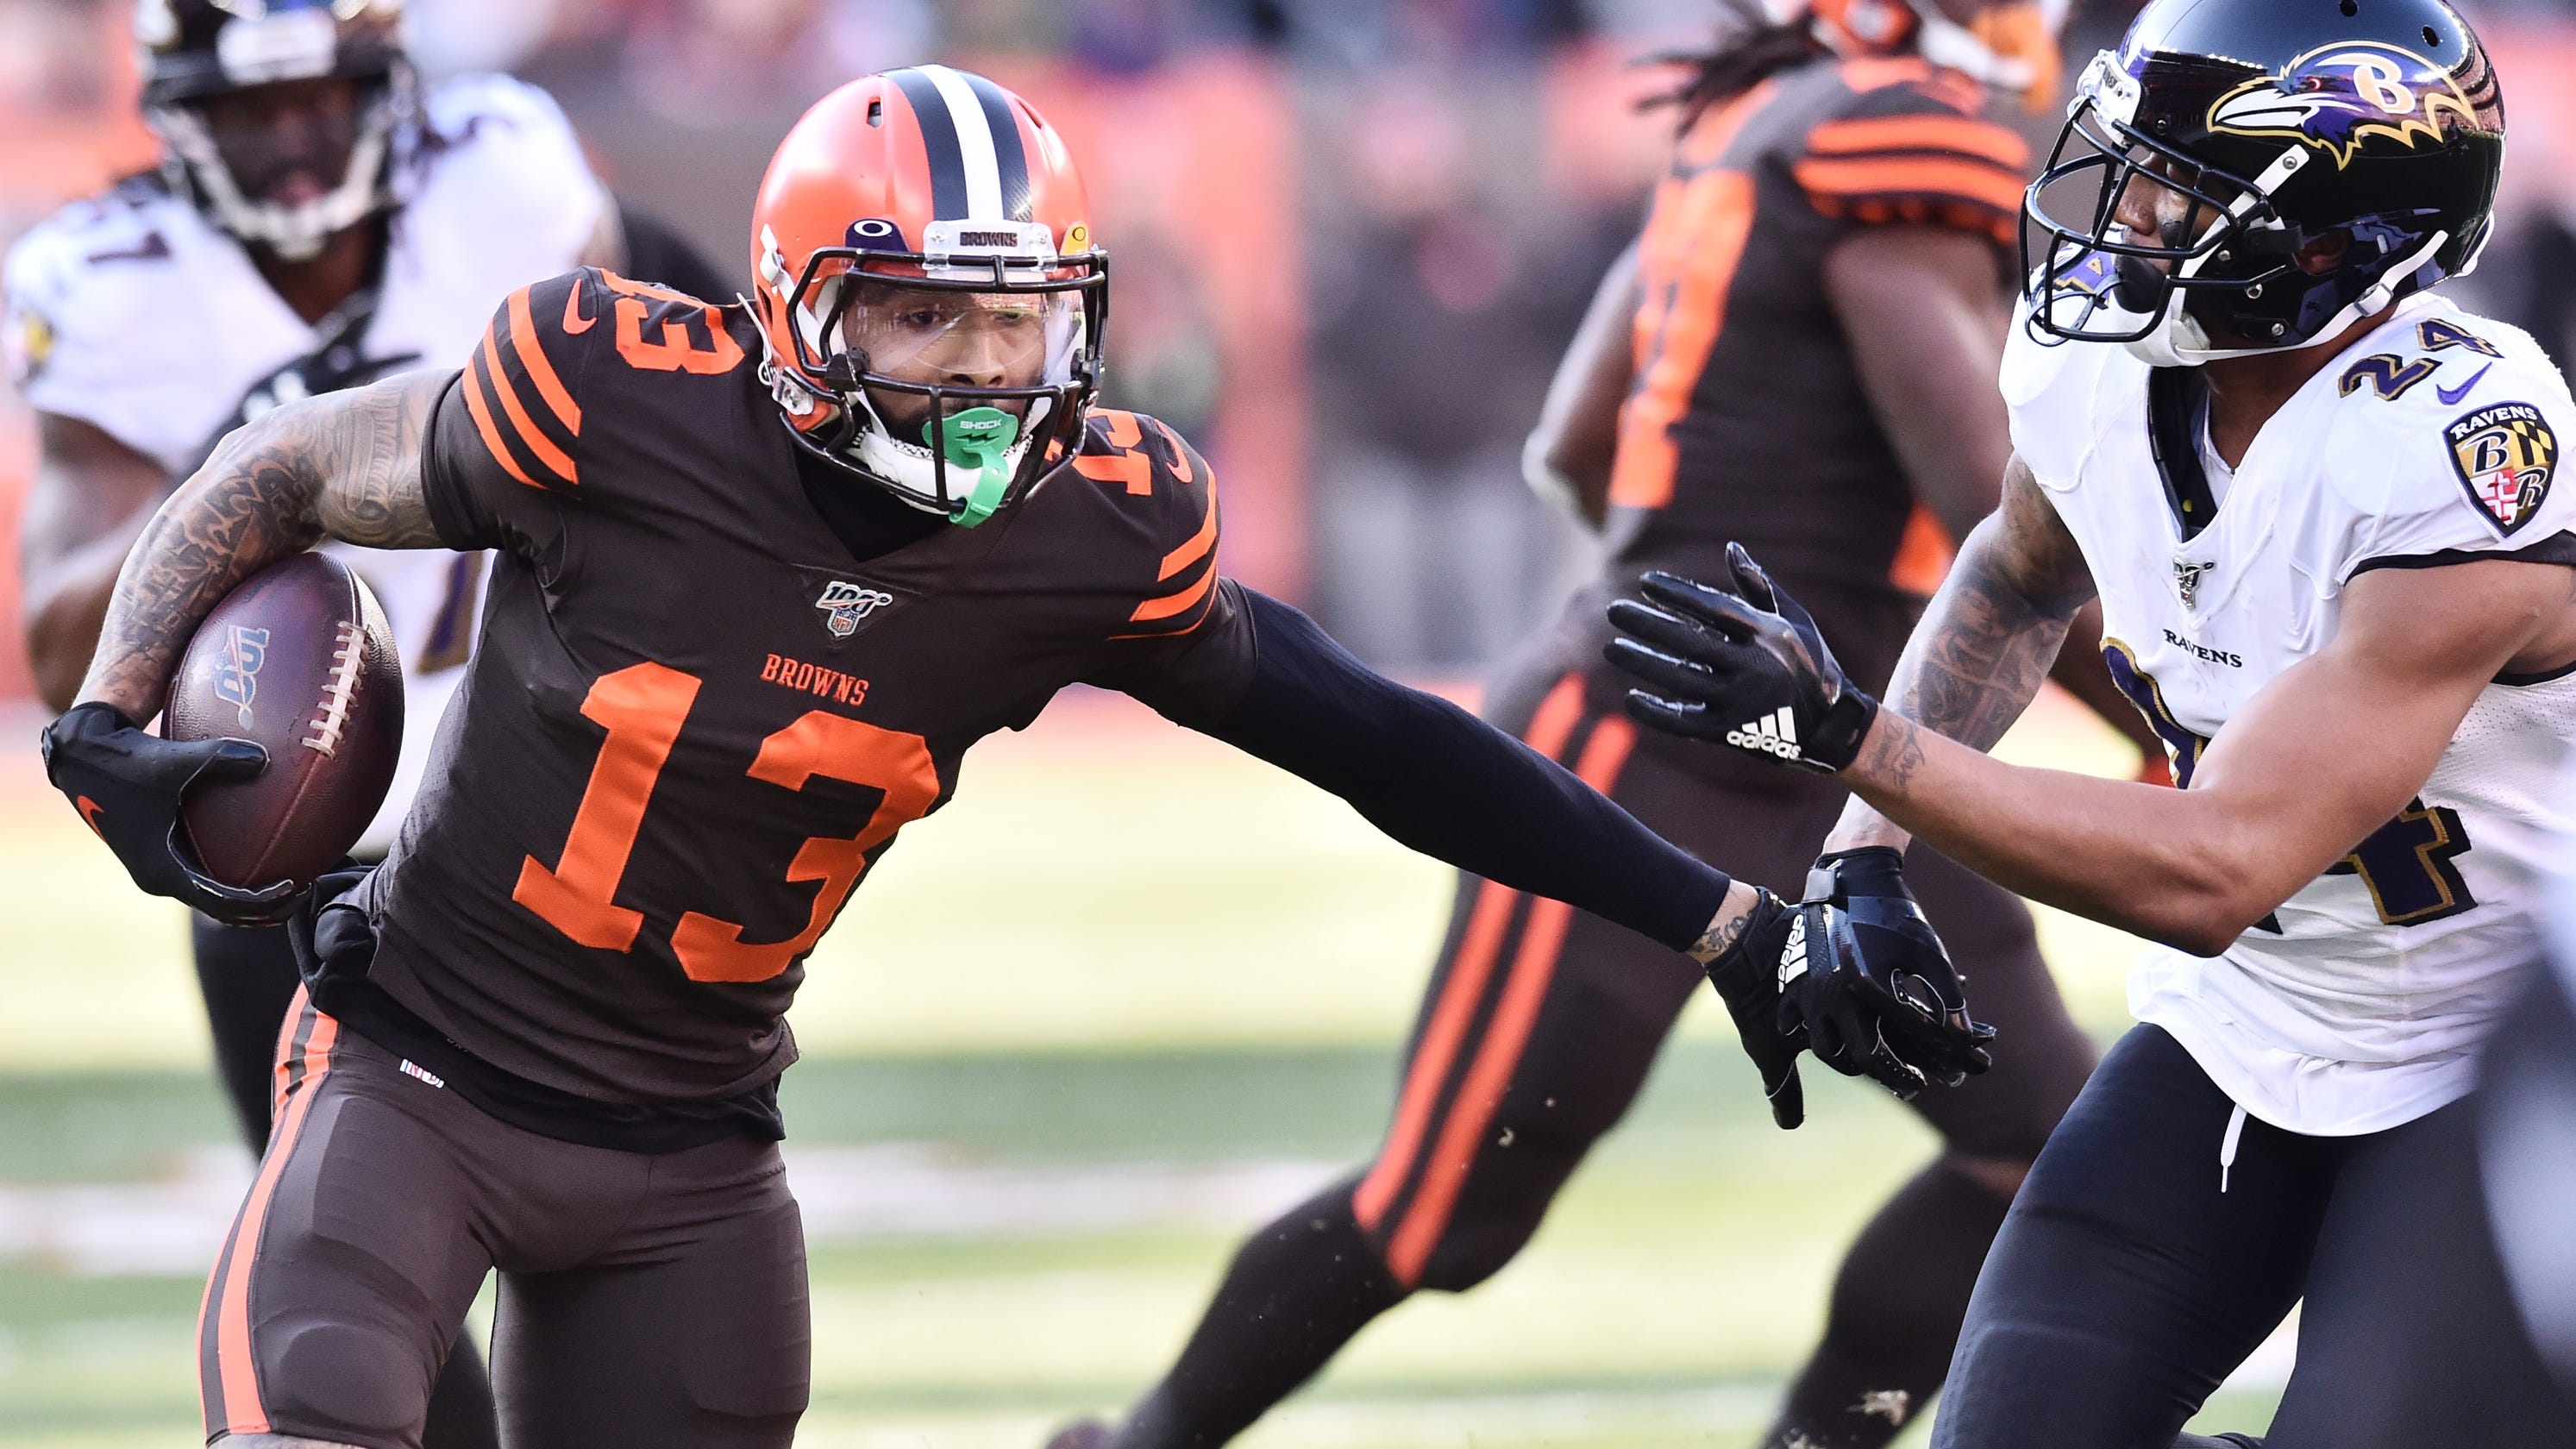 Browns WR is healthy, coach Kevin Stefanski says